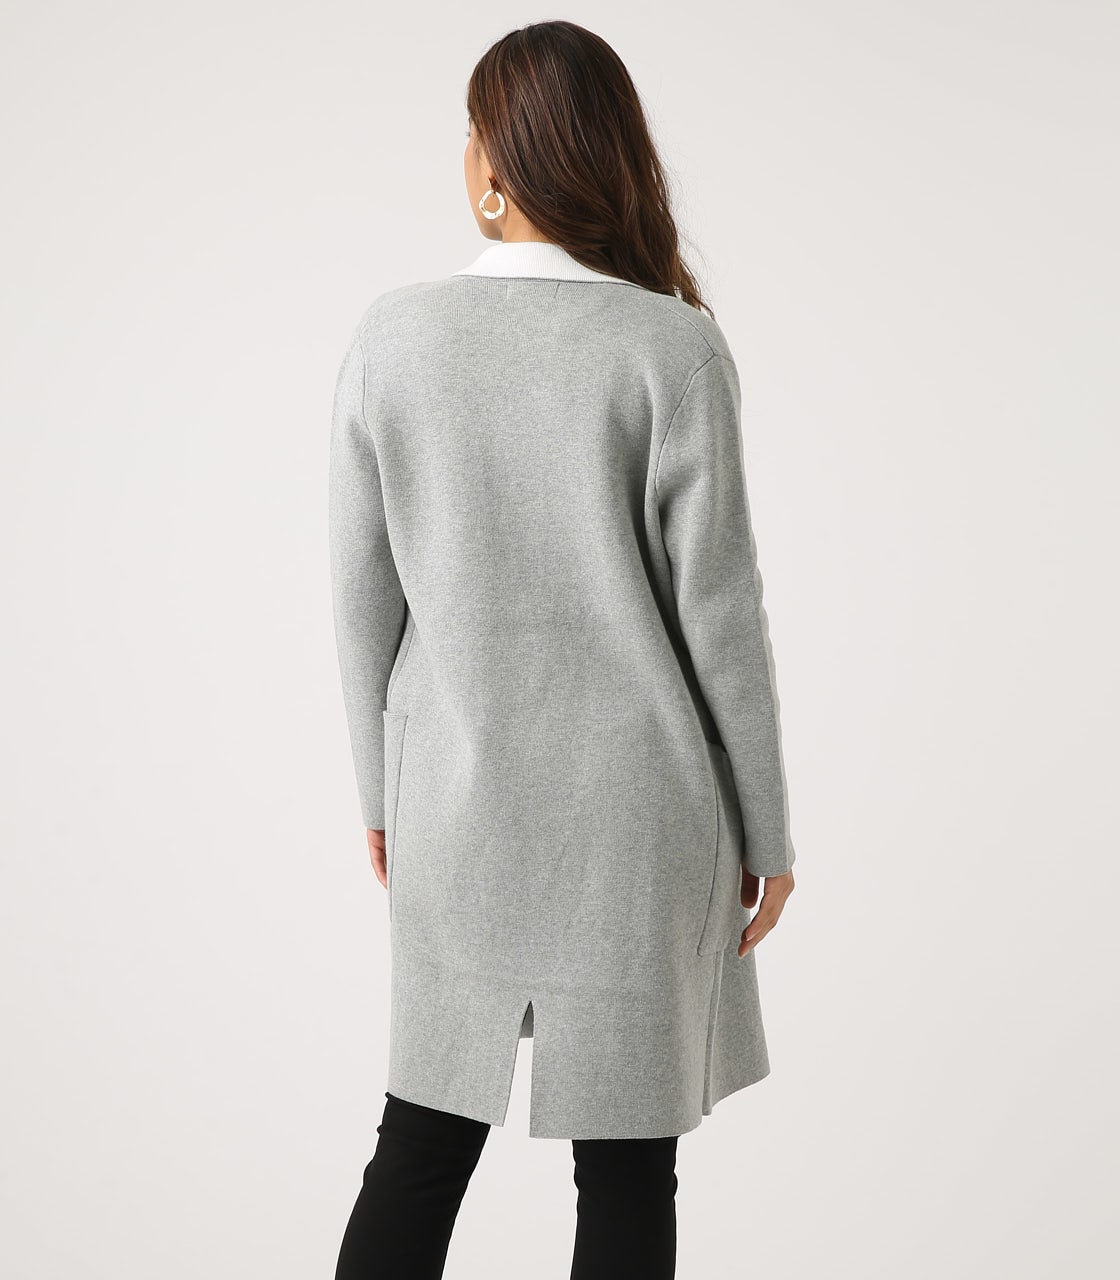 【AZUL BY MOUSSY】COCOON KNIT COAT 詳細画像 T.GRY 7